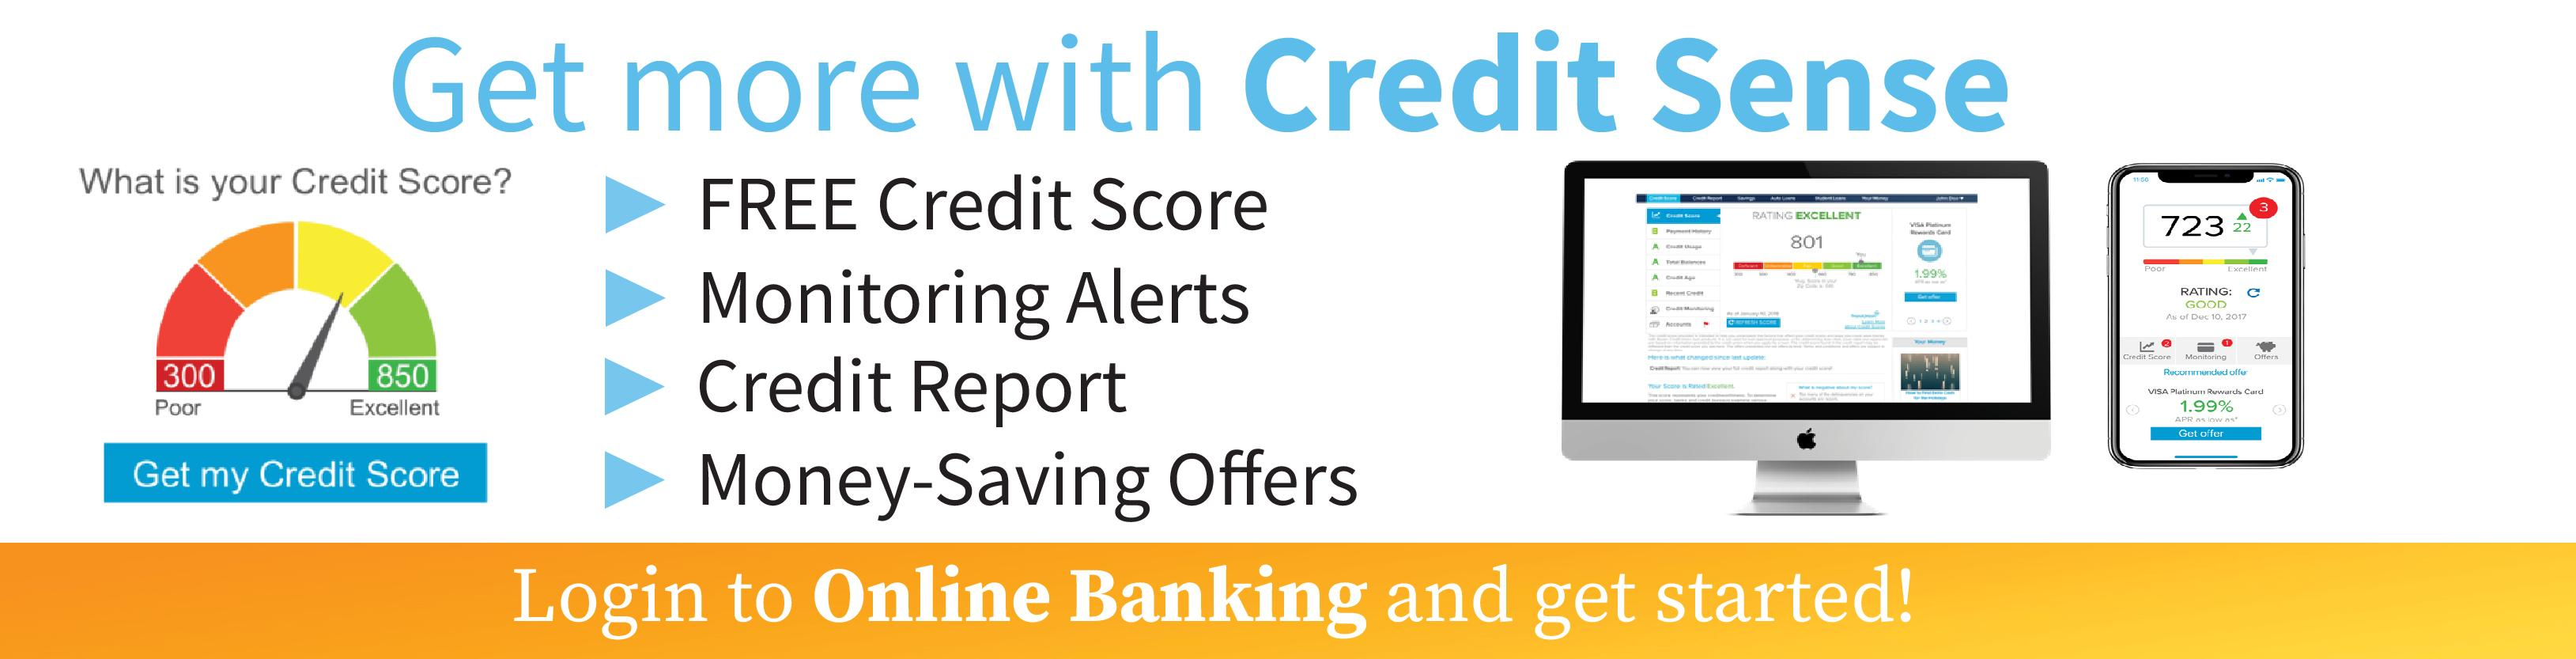 Get more with Credit Sense